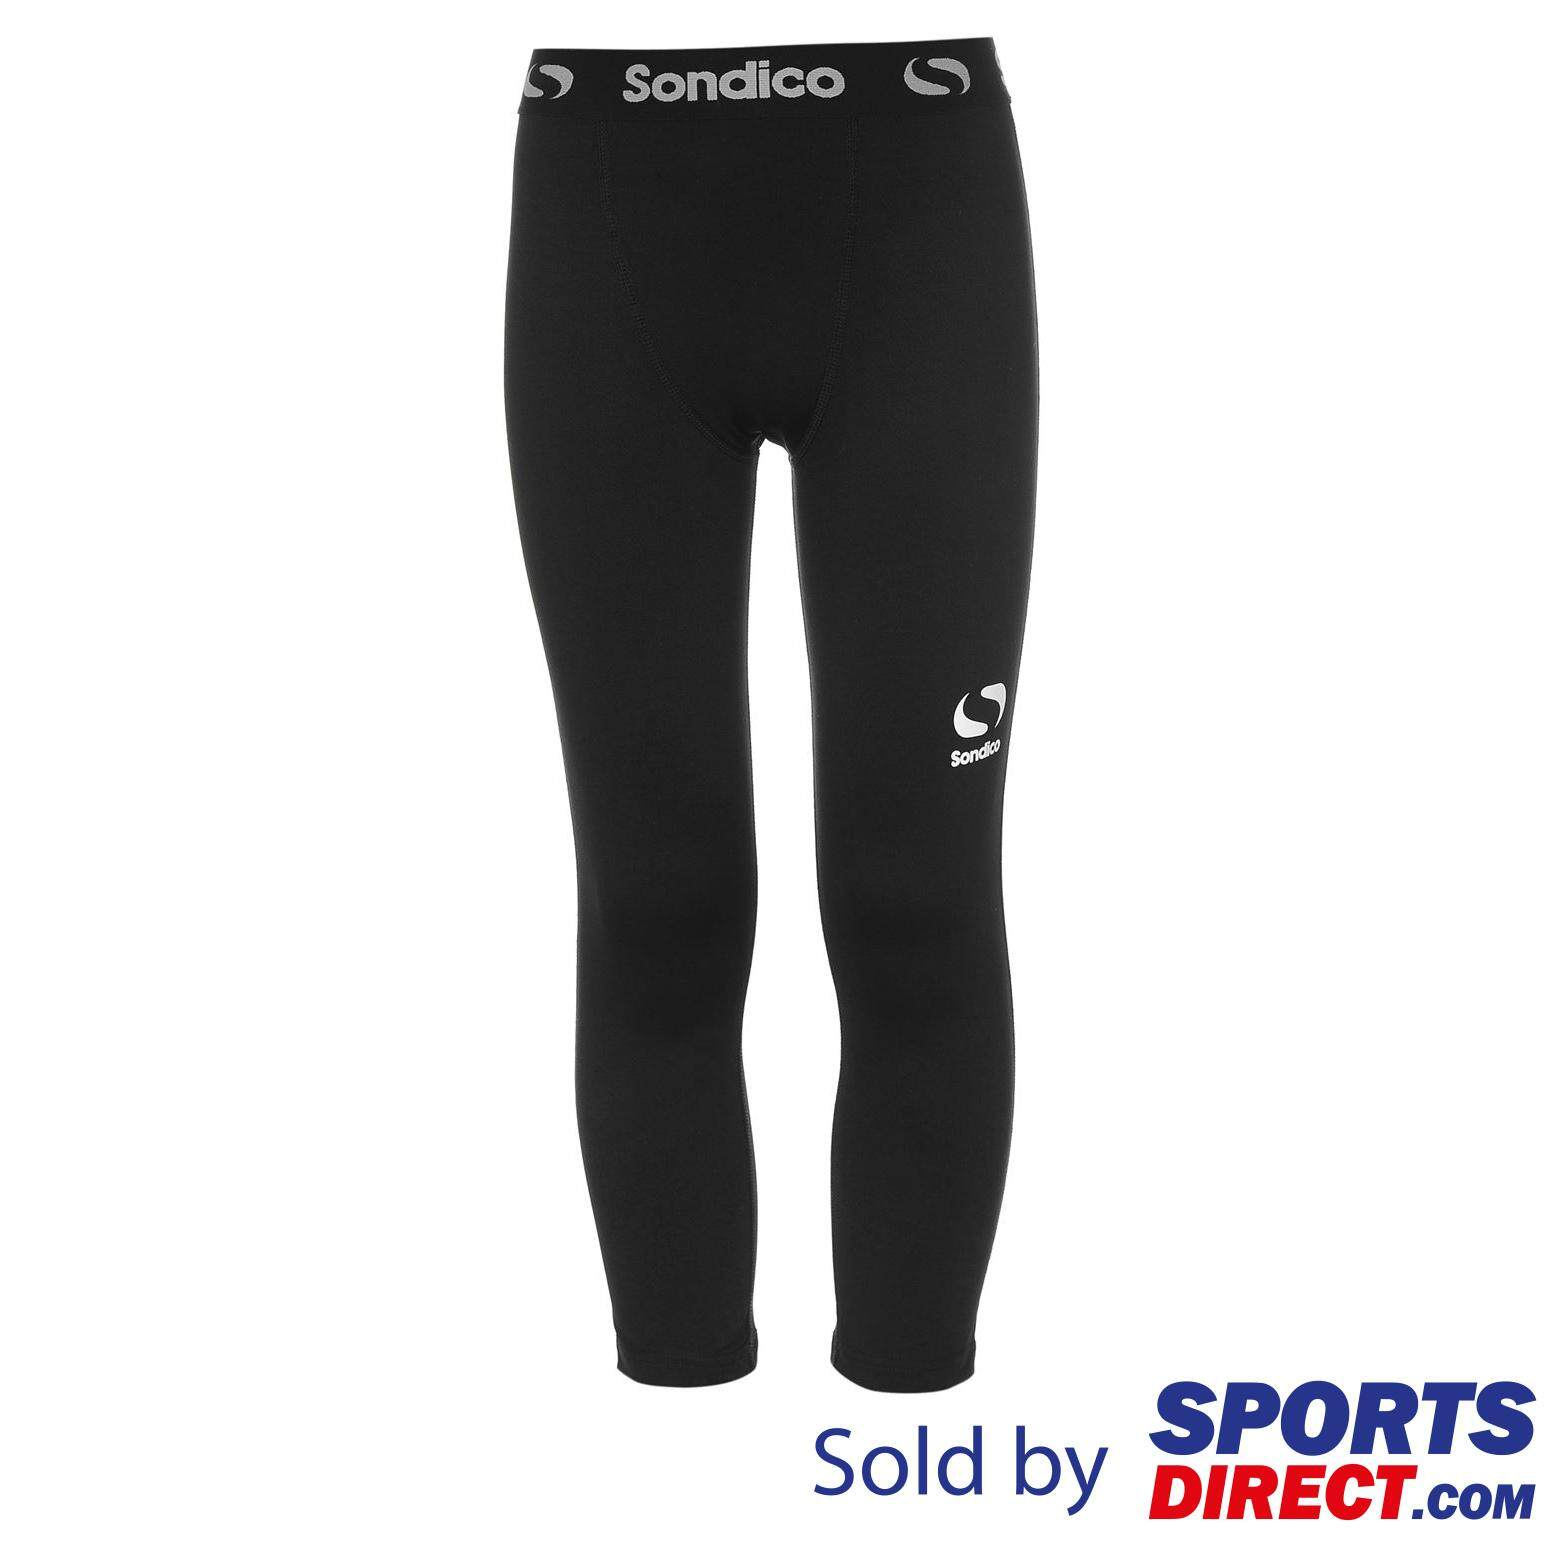 Sondico Kids Boys Core Three Quarter Tights (black) By Sports Direct Mst Sdn Bhd.